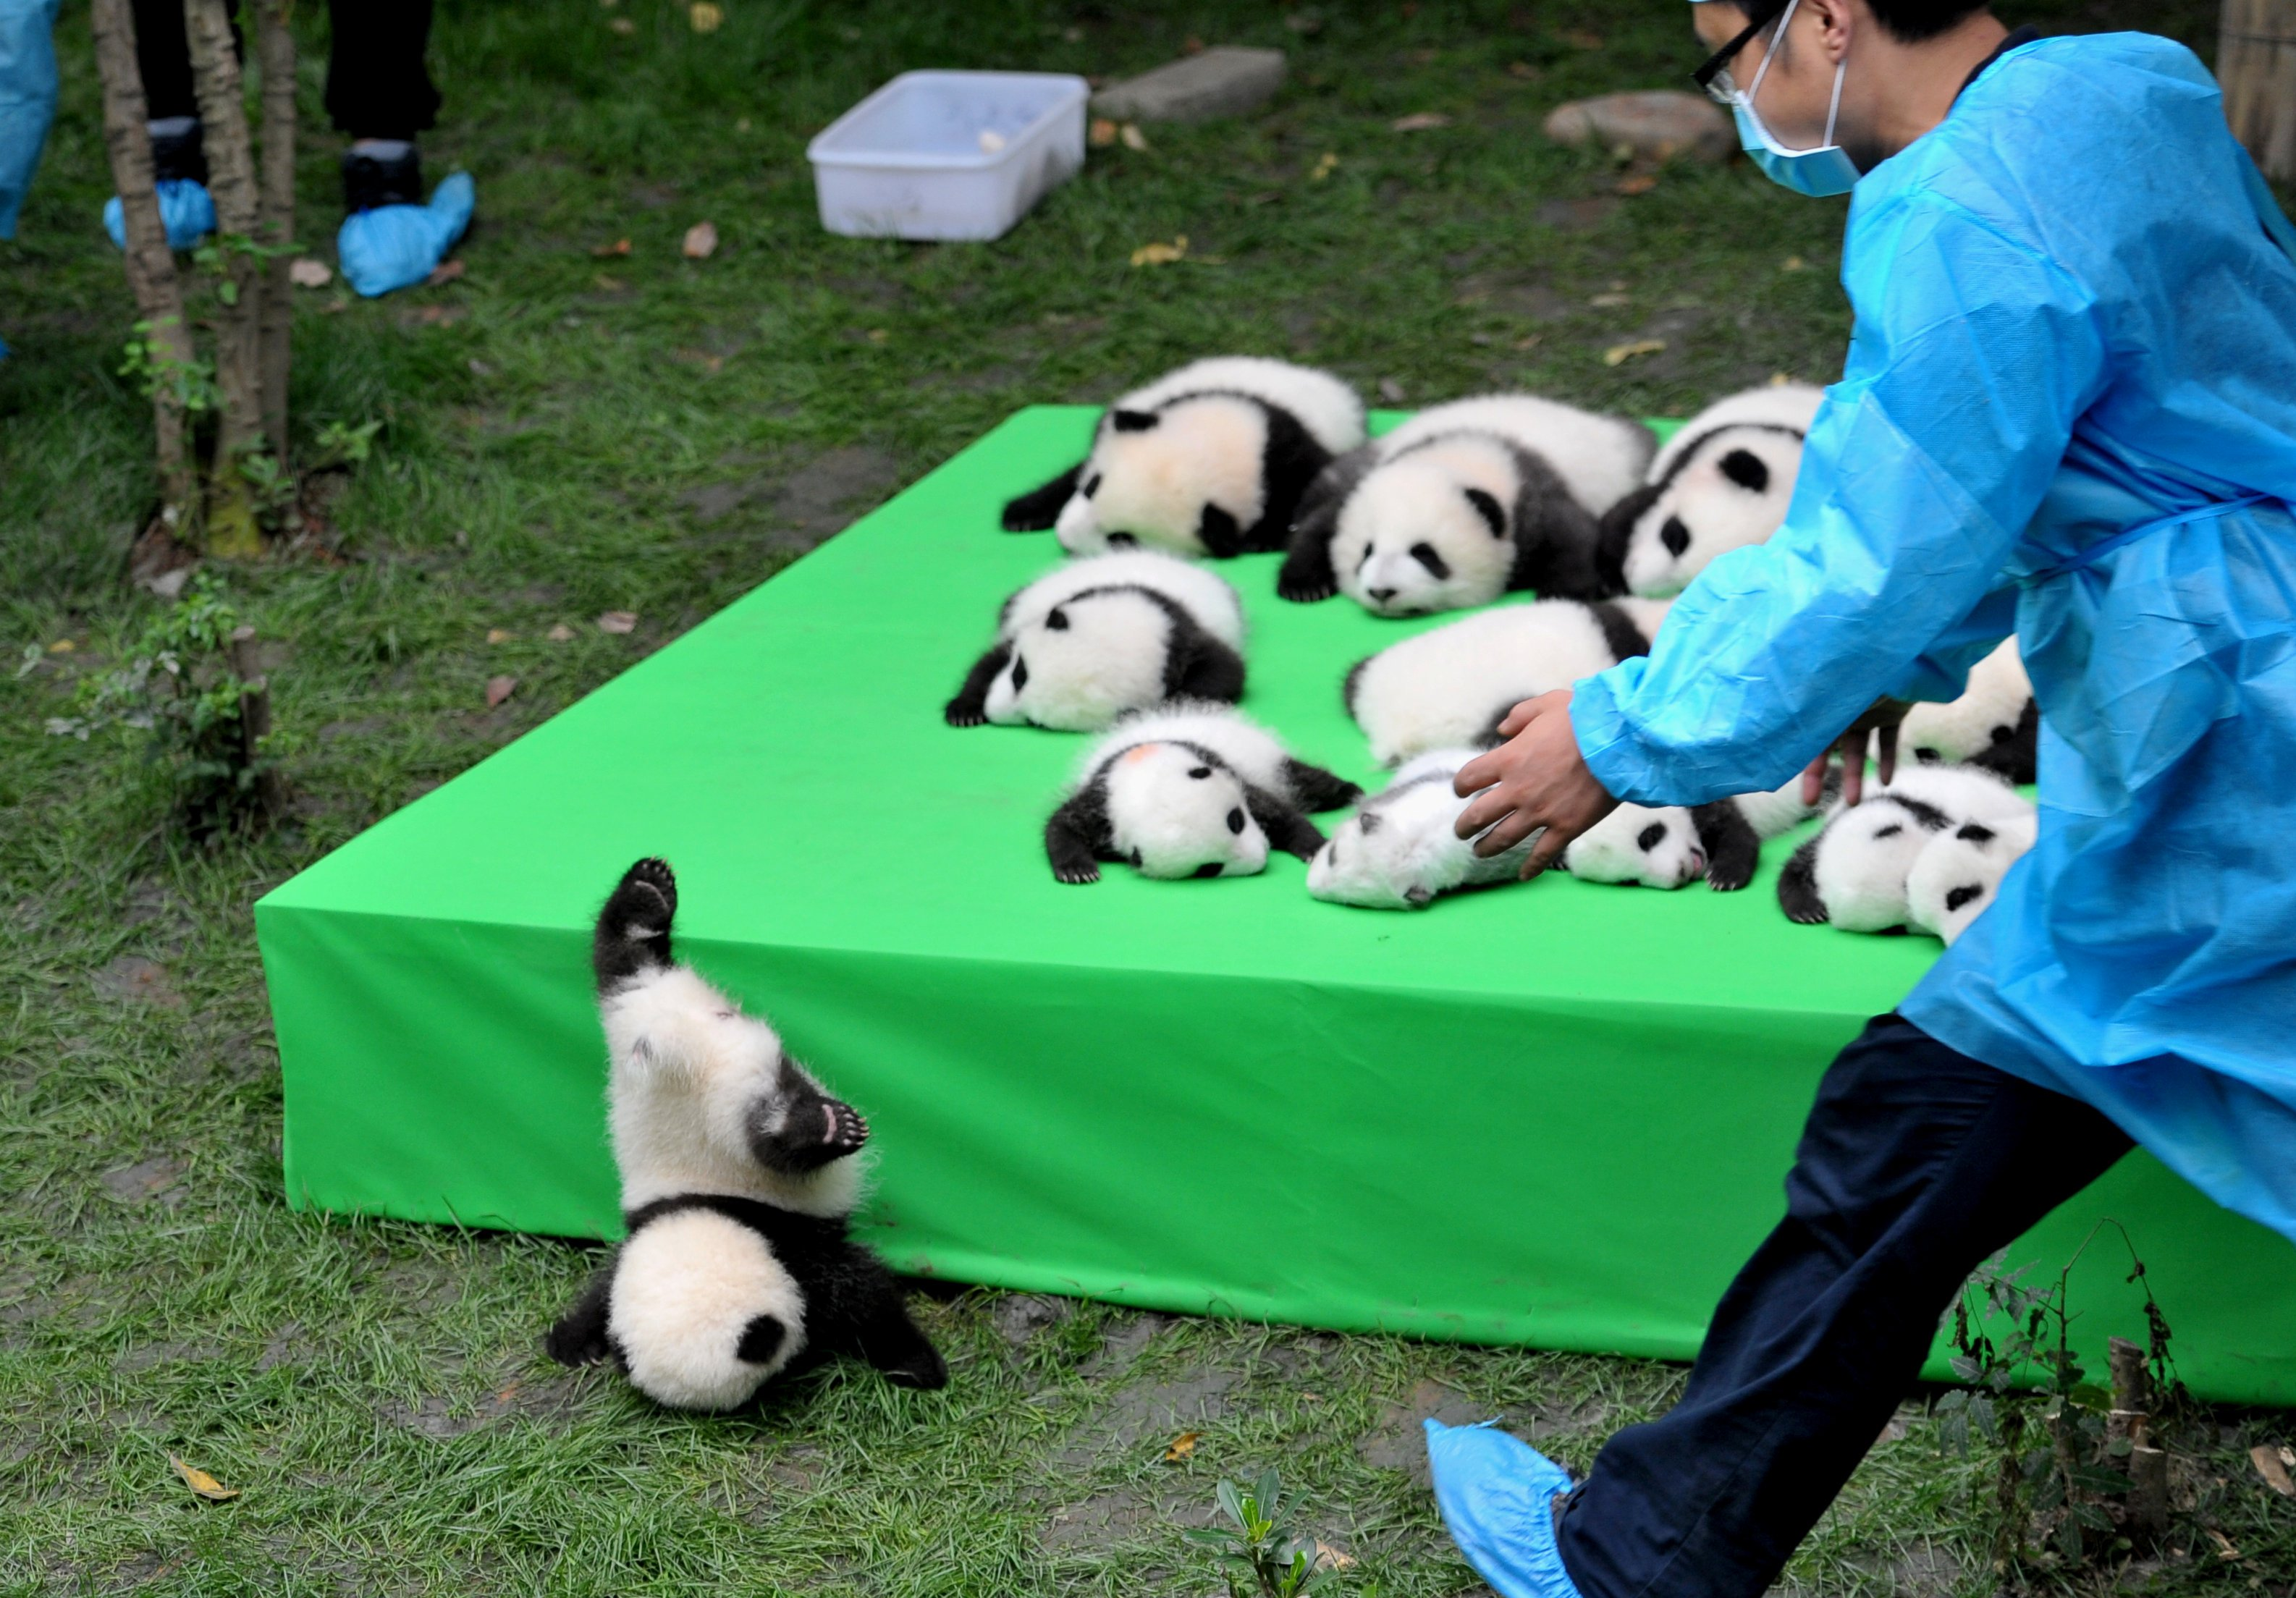 A giant panda cub falls from a stage while 23 giant pandas born in 2016 are seen on a display at the Chengdu Research Base of Giant Panda Breeding in Chengdu, China, on Sept. 29, 2016.